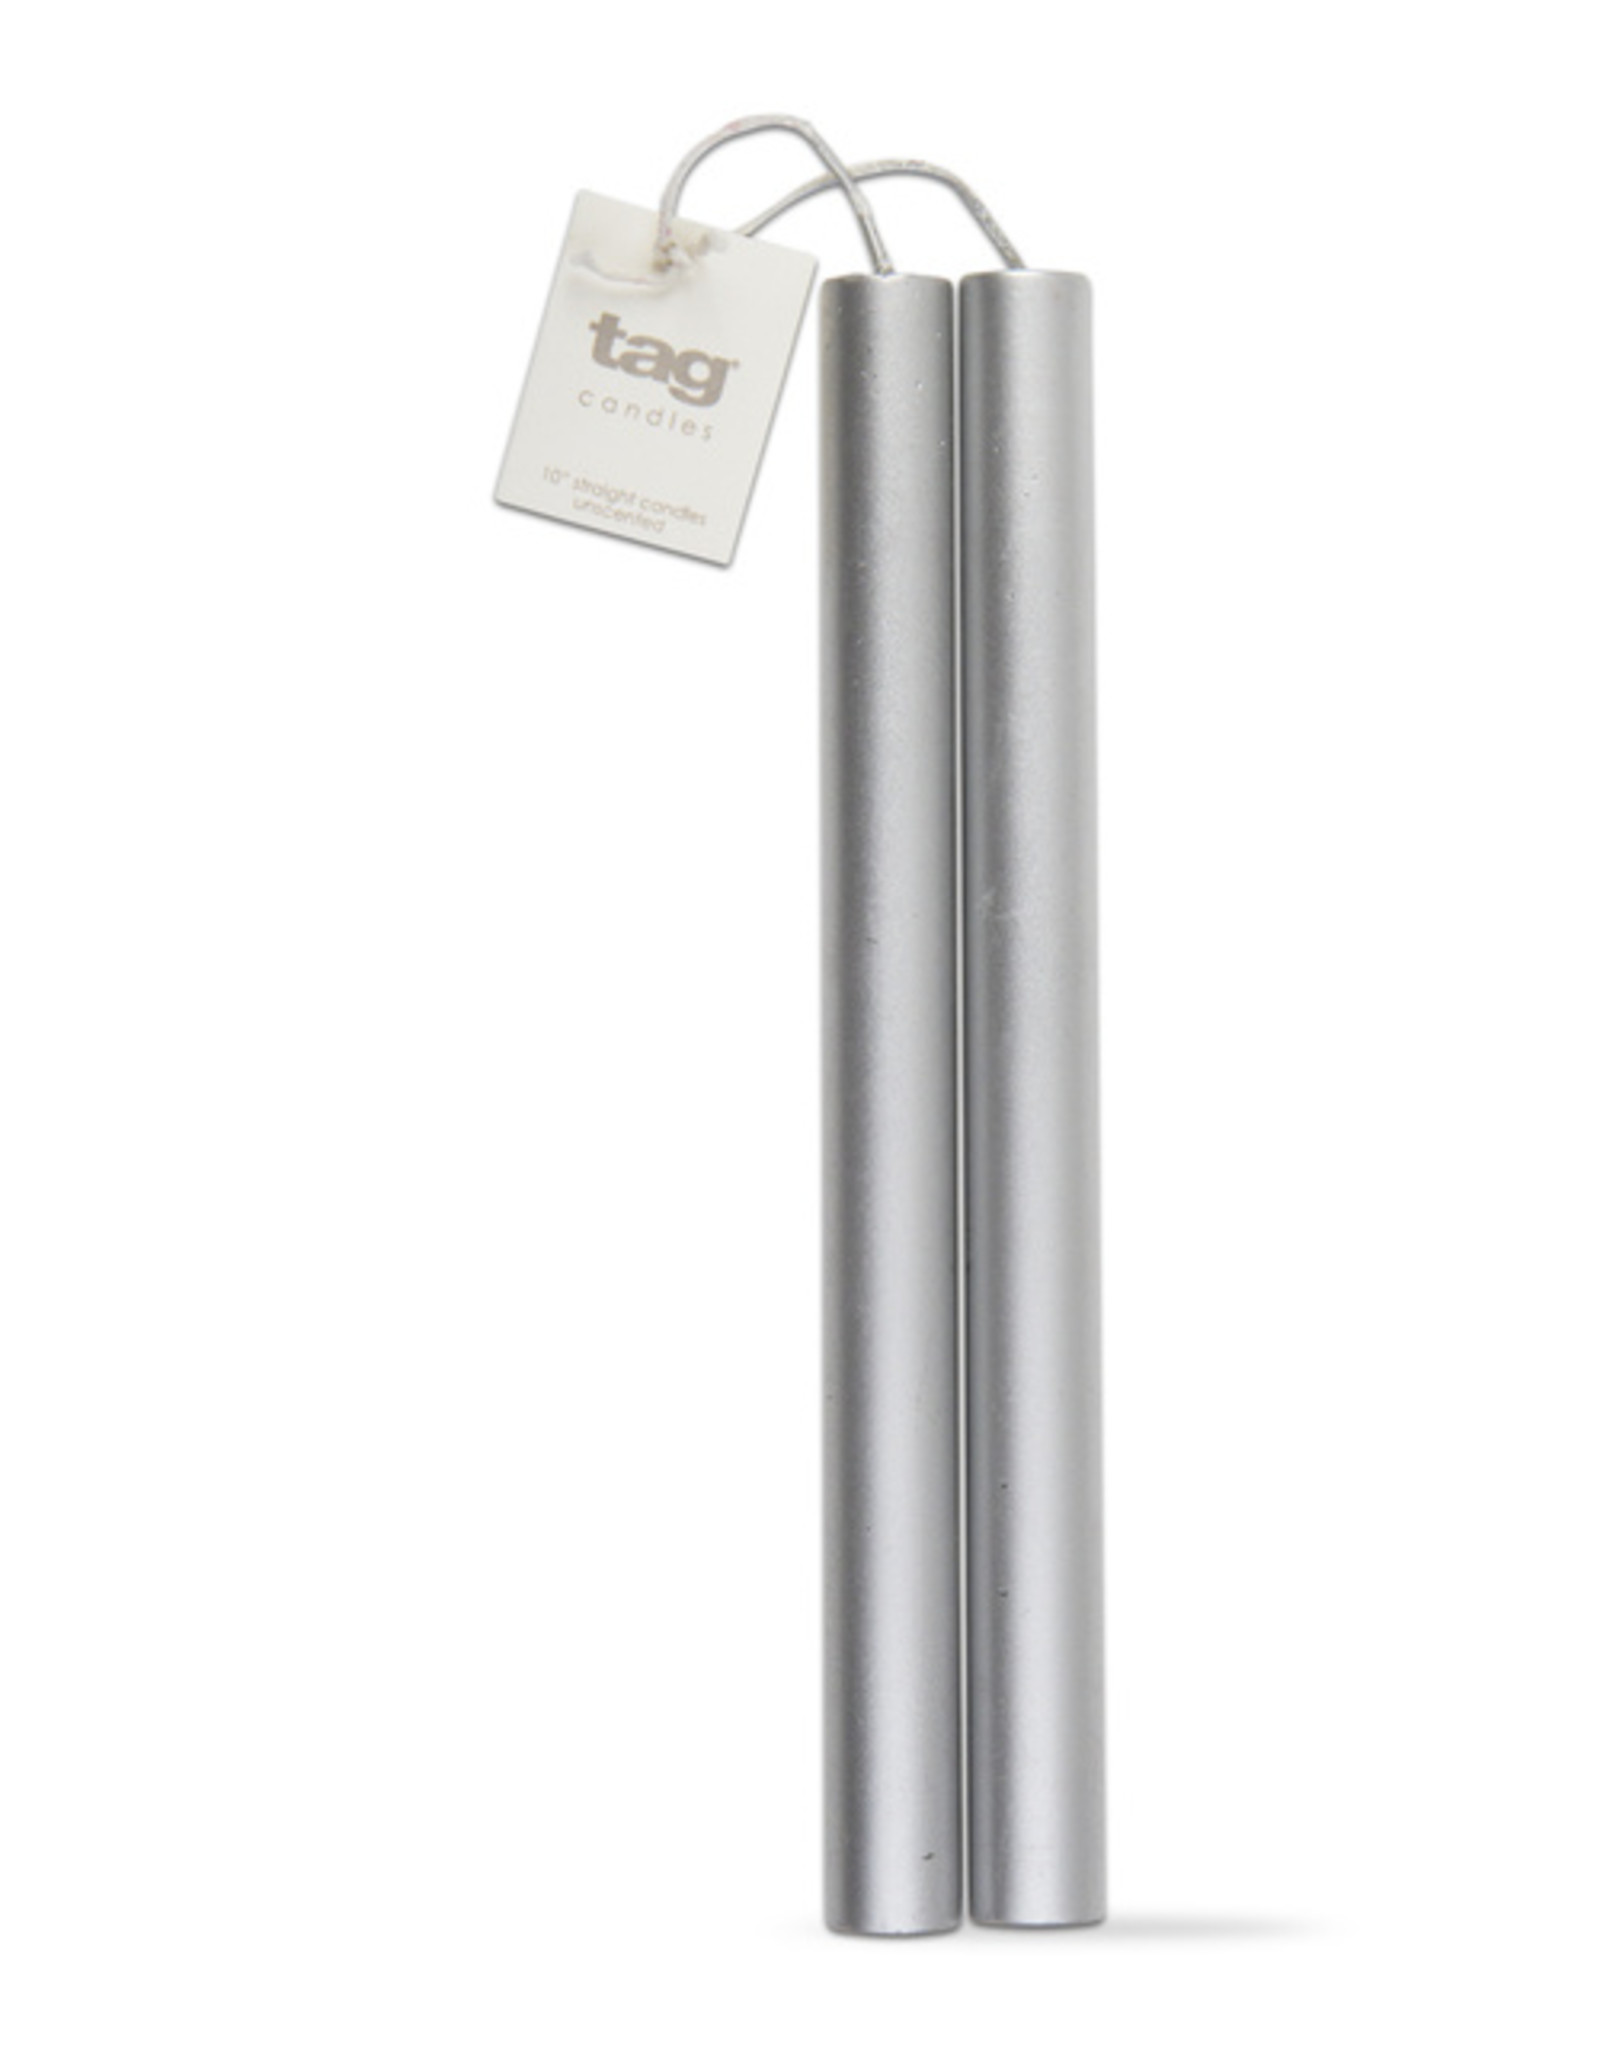 Tag Tapered Candles - Metalic